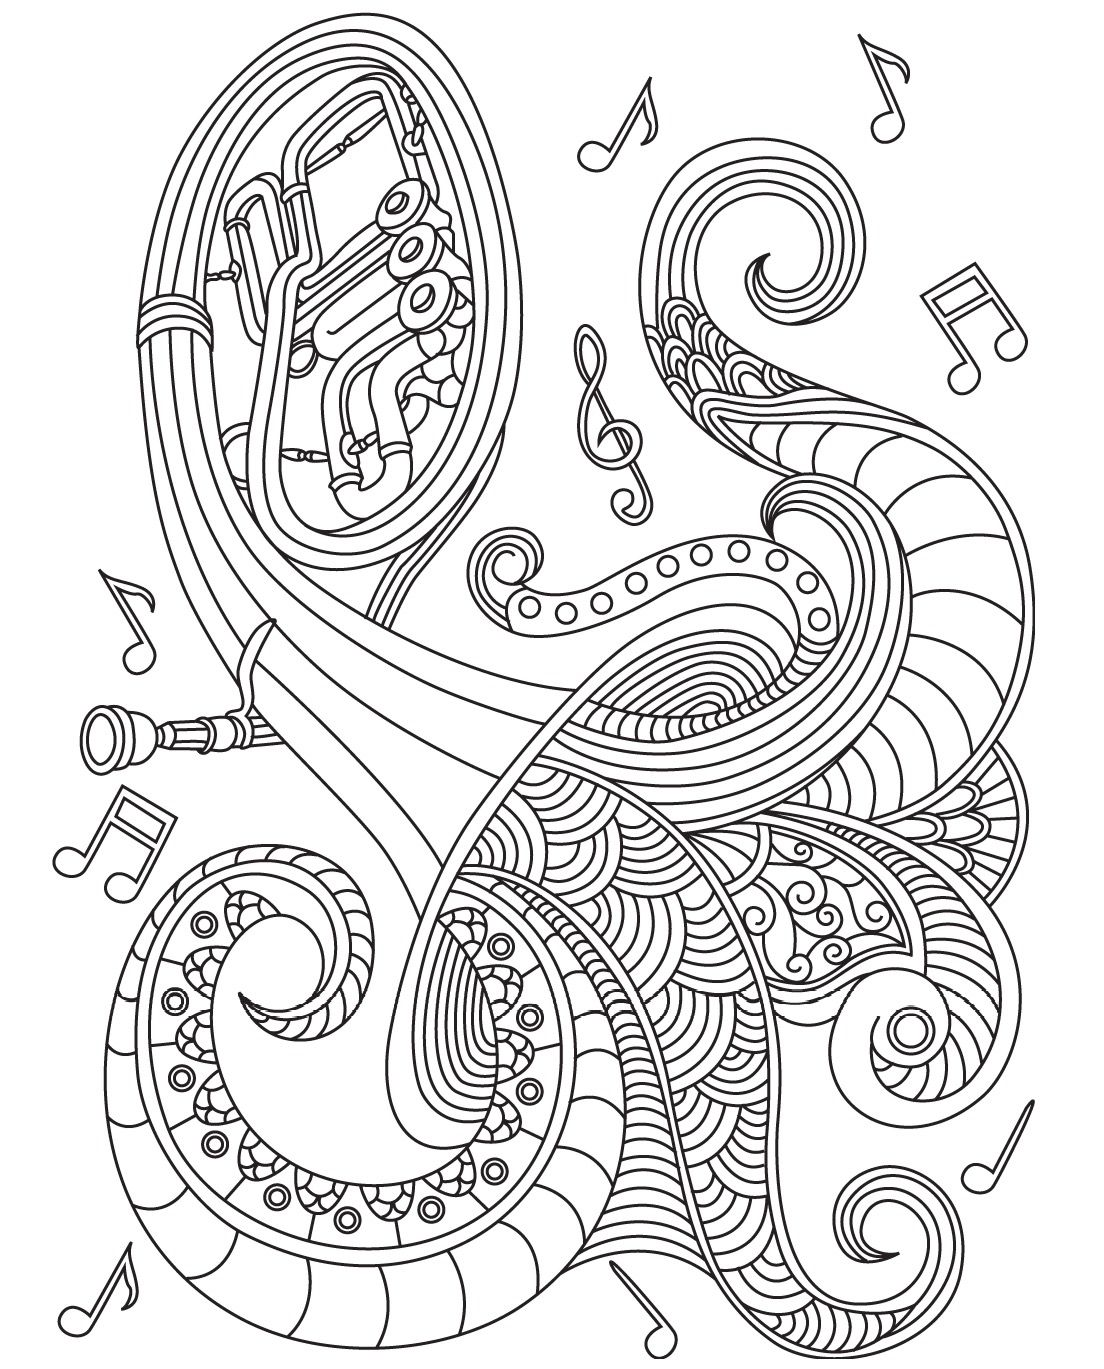 Musical Instrument Colorish Coloring Book For Adults Mandala Relax By Goodsofttech Music Coloring Coloring Books Altered Book Art